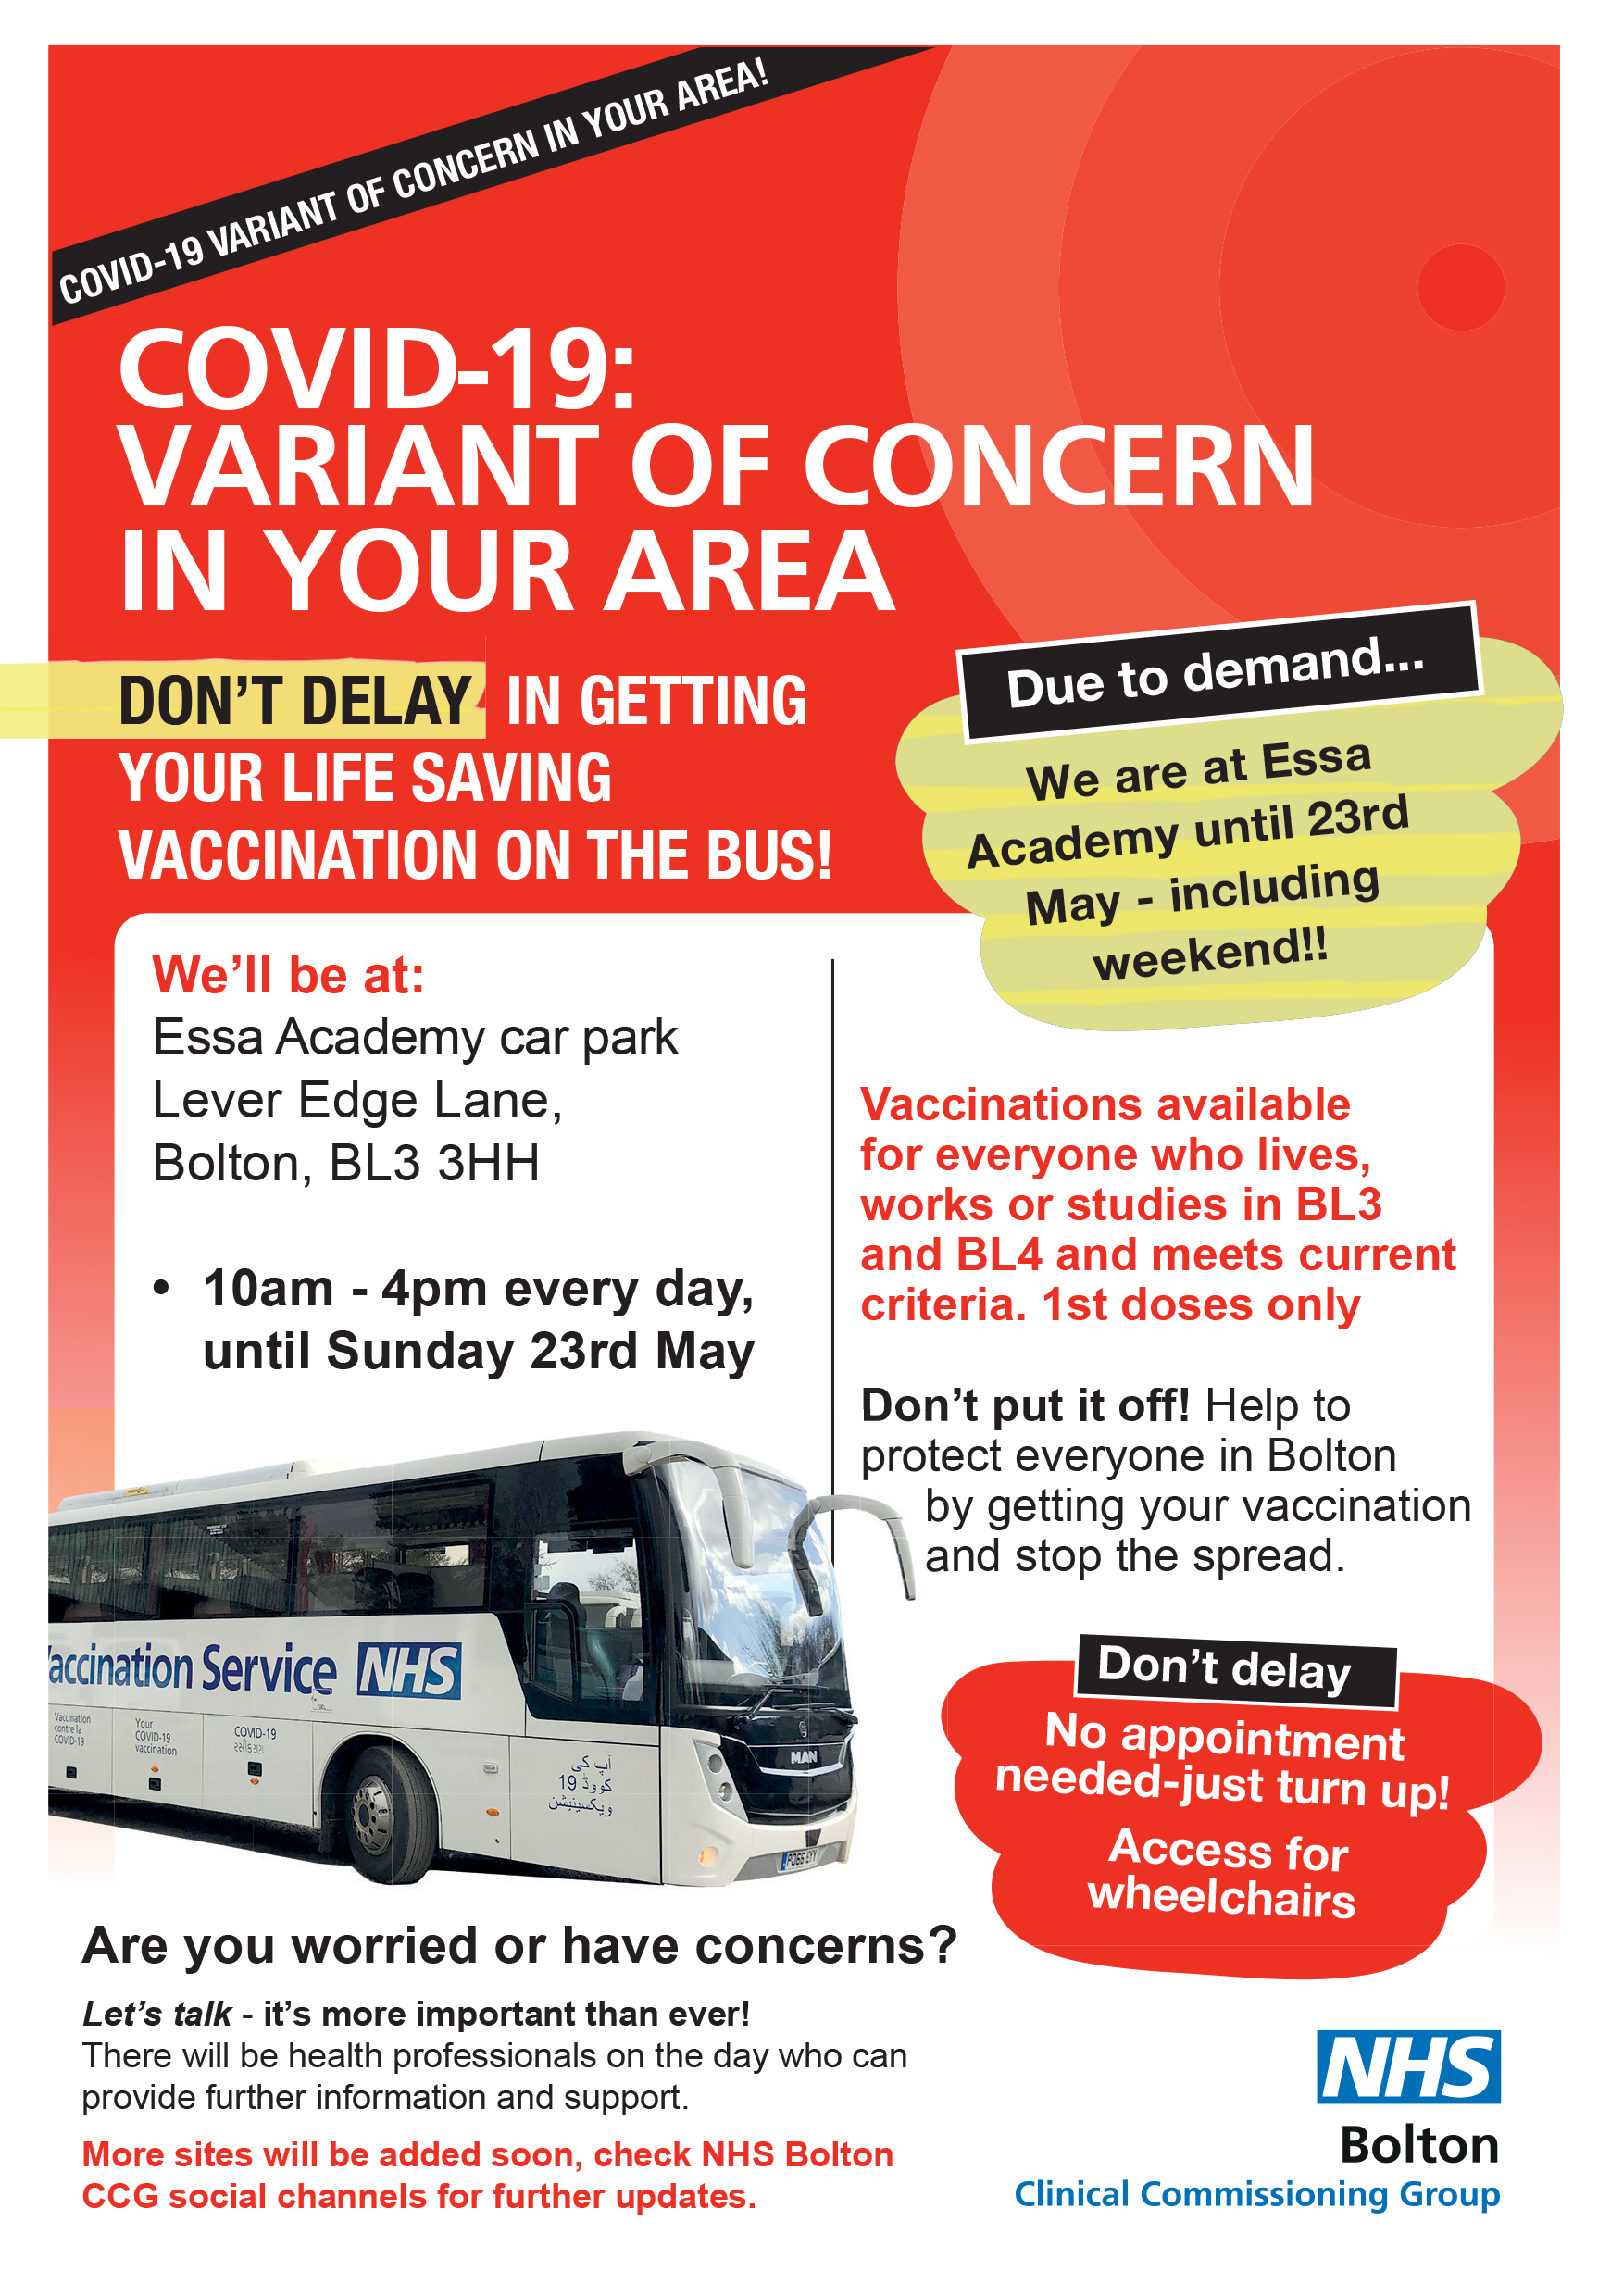 Variant of concern - vaccination bus